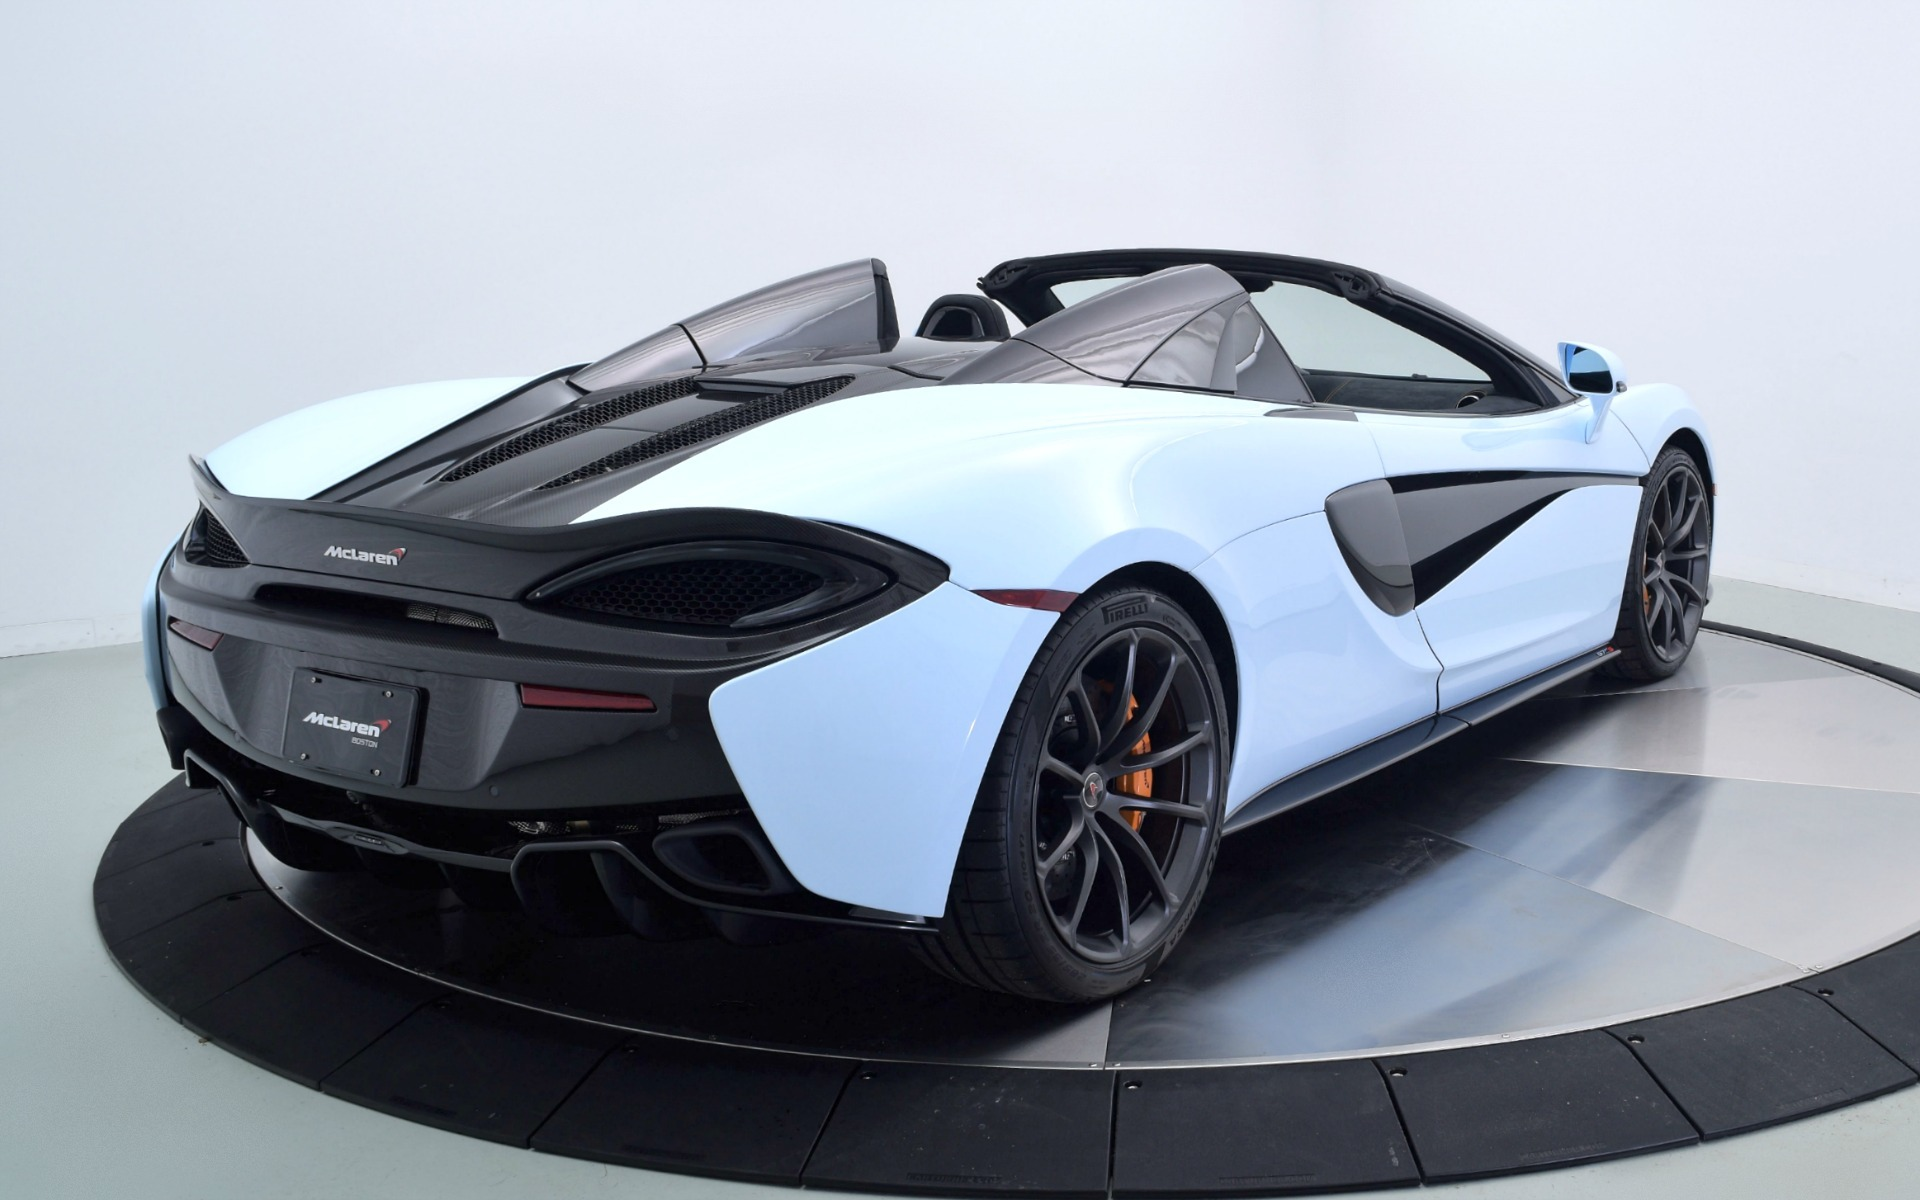 How To Calculate Apr On A Loan >> 2018 McLaren 570S Spider For Sale in Norwell, MA 004002 | Mclaren Boston